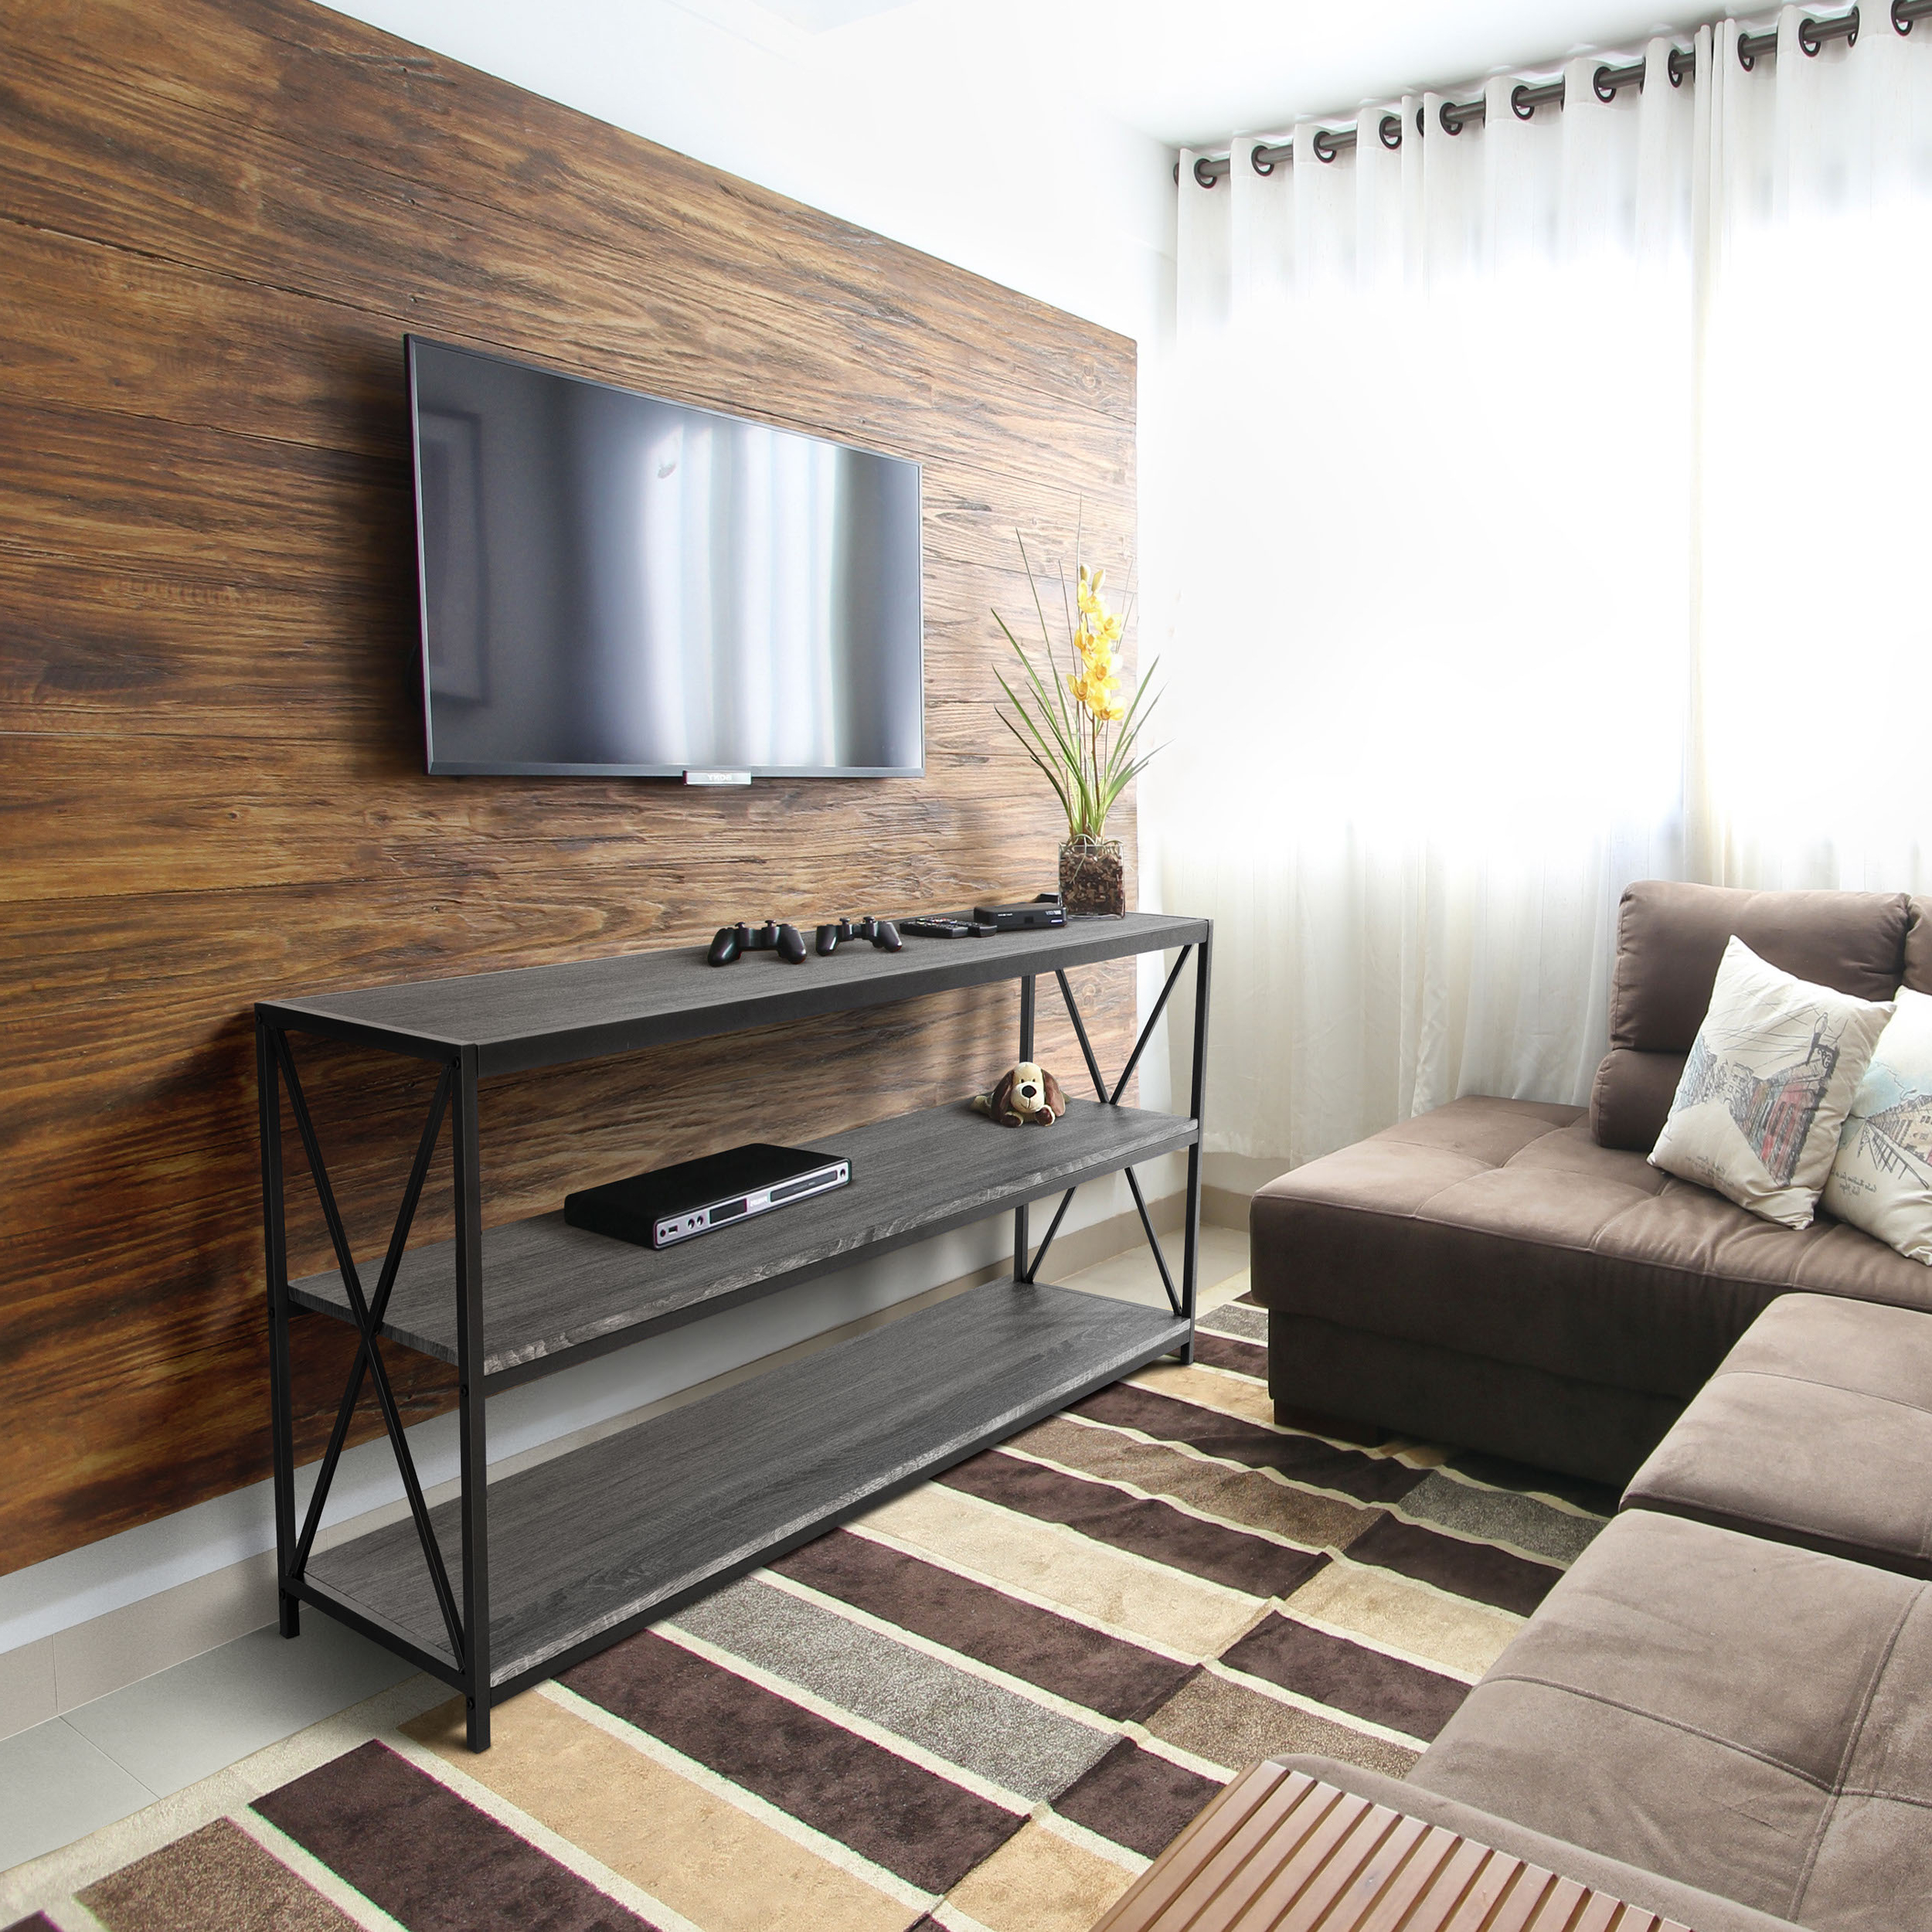 """Millen Tv Stands For Tvs Up To 60"""" For Well Known Zenvida Universal Tv Stand For Tv's Up To 65"""" Metal Wood (View 16 of 25)"""